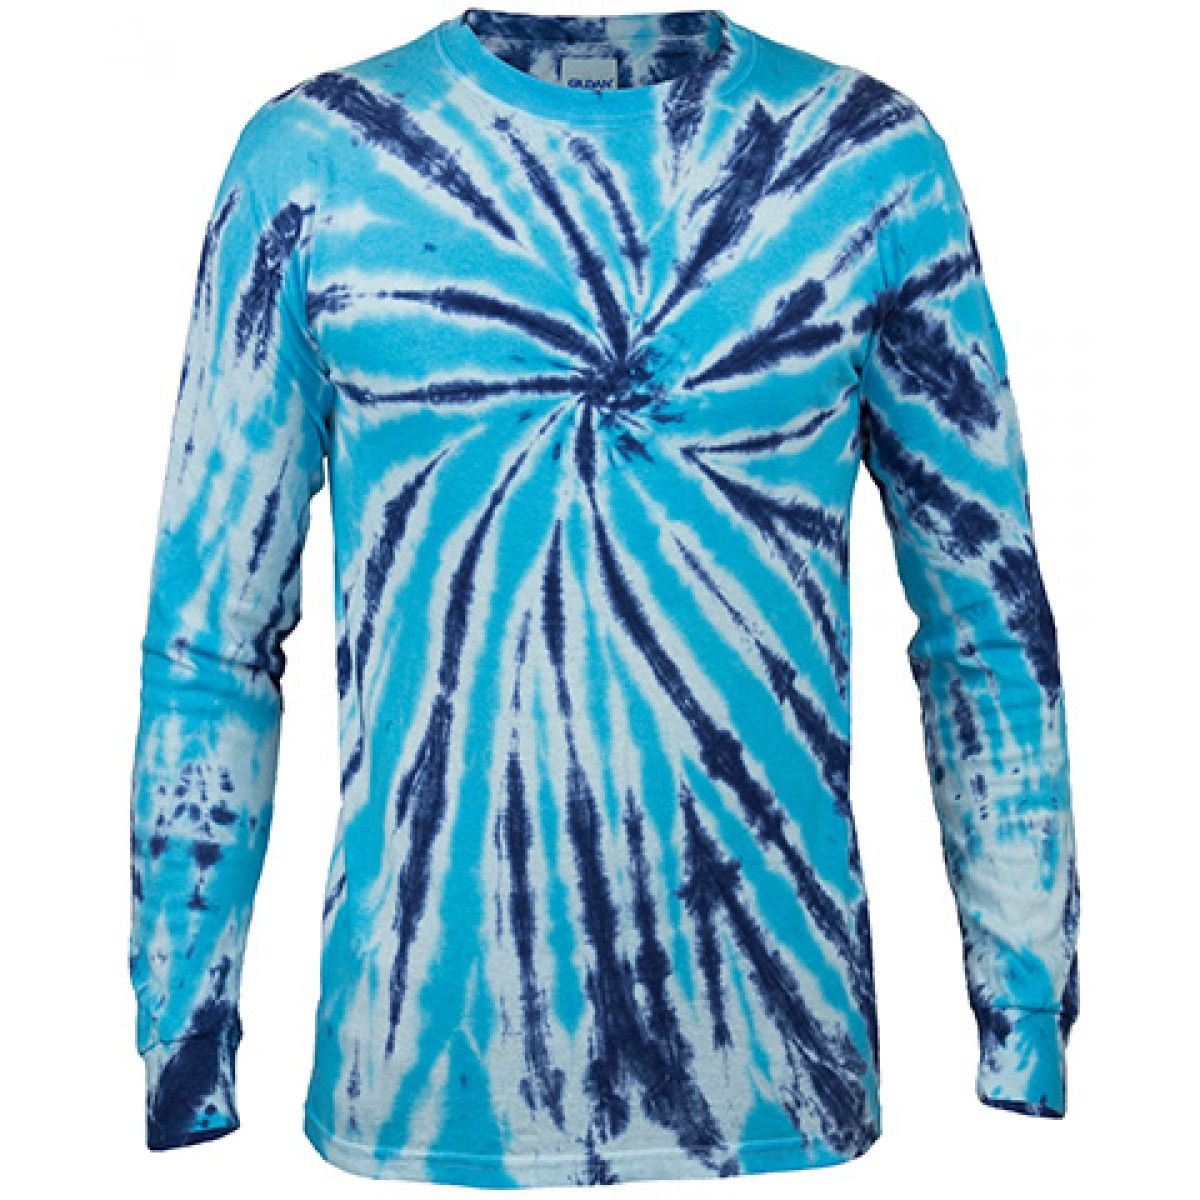 Multi Color Tie-Dye Long Sleeve Shirt -Royal Blue-M